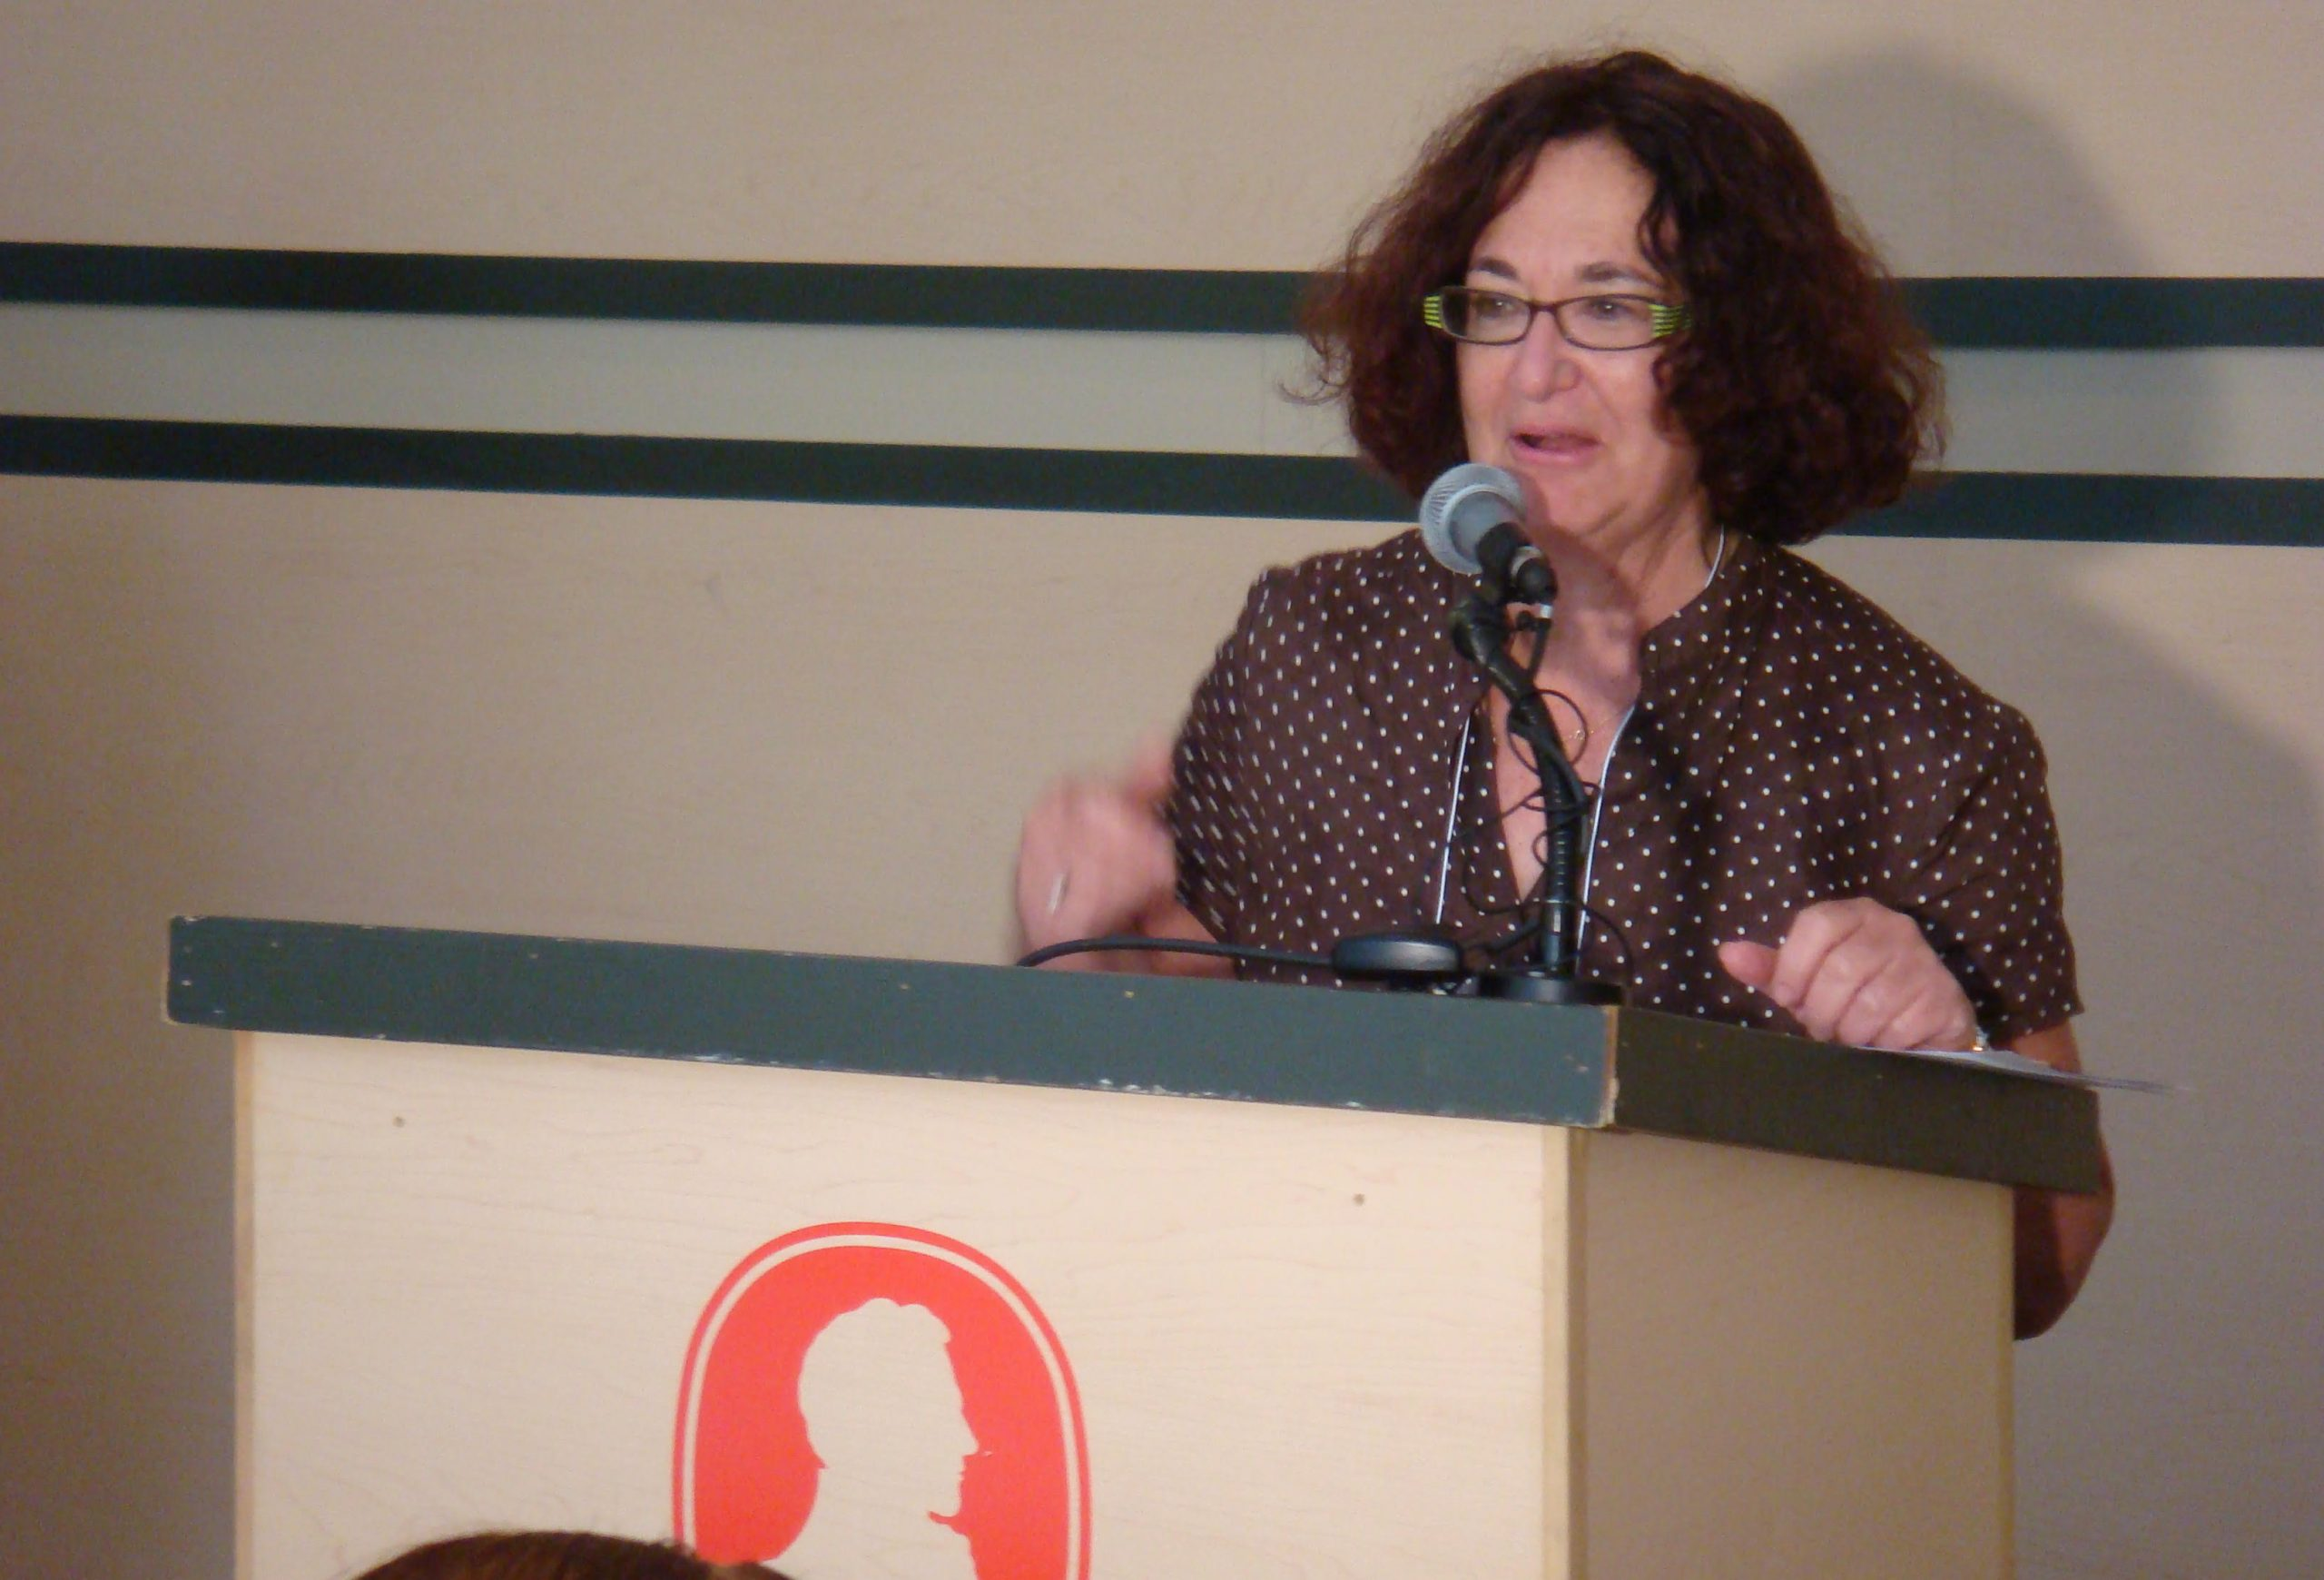 Judy Rebick speaking at a podium